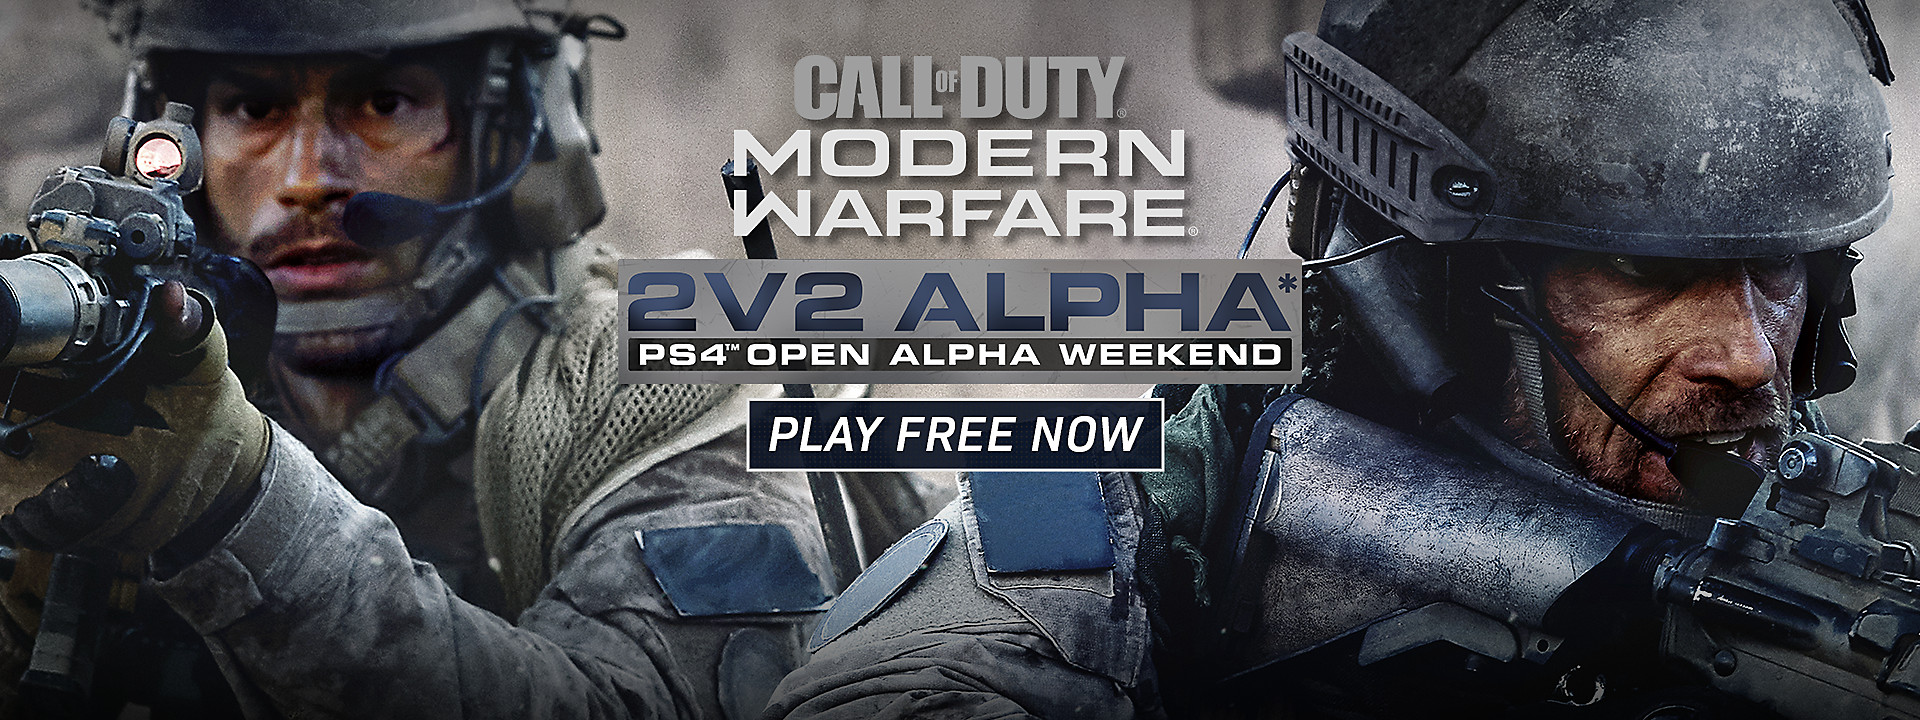 Call of Duty: Modern Warfare - PlayStation-Exclusive 2v2 Alpha Available Now